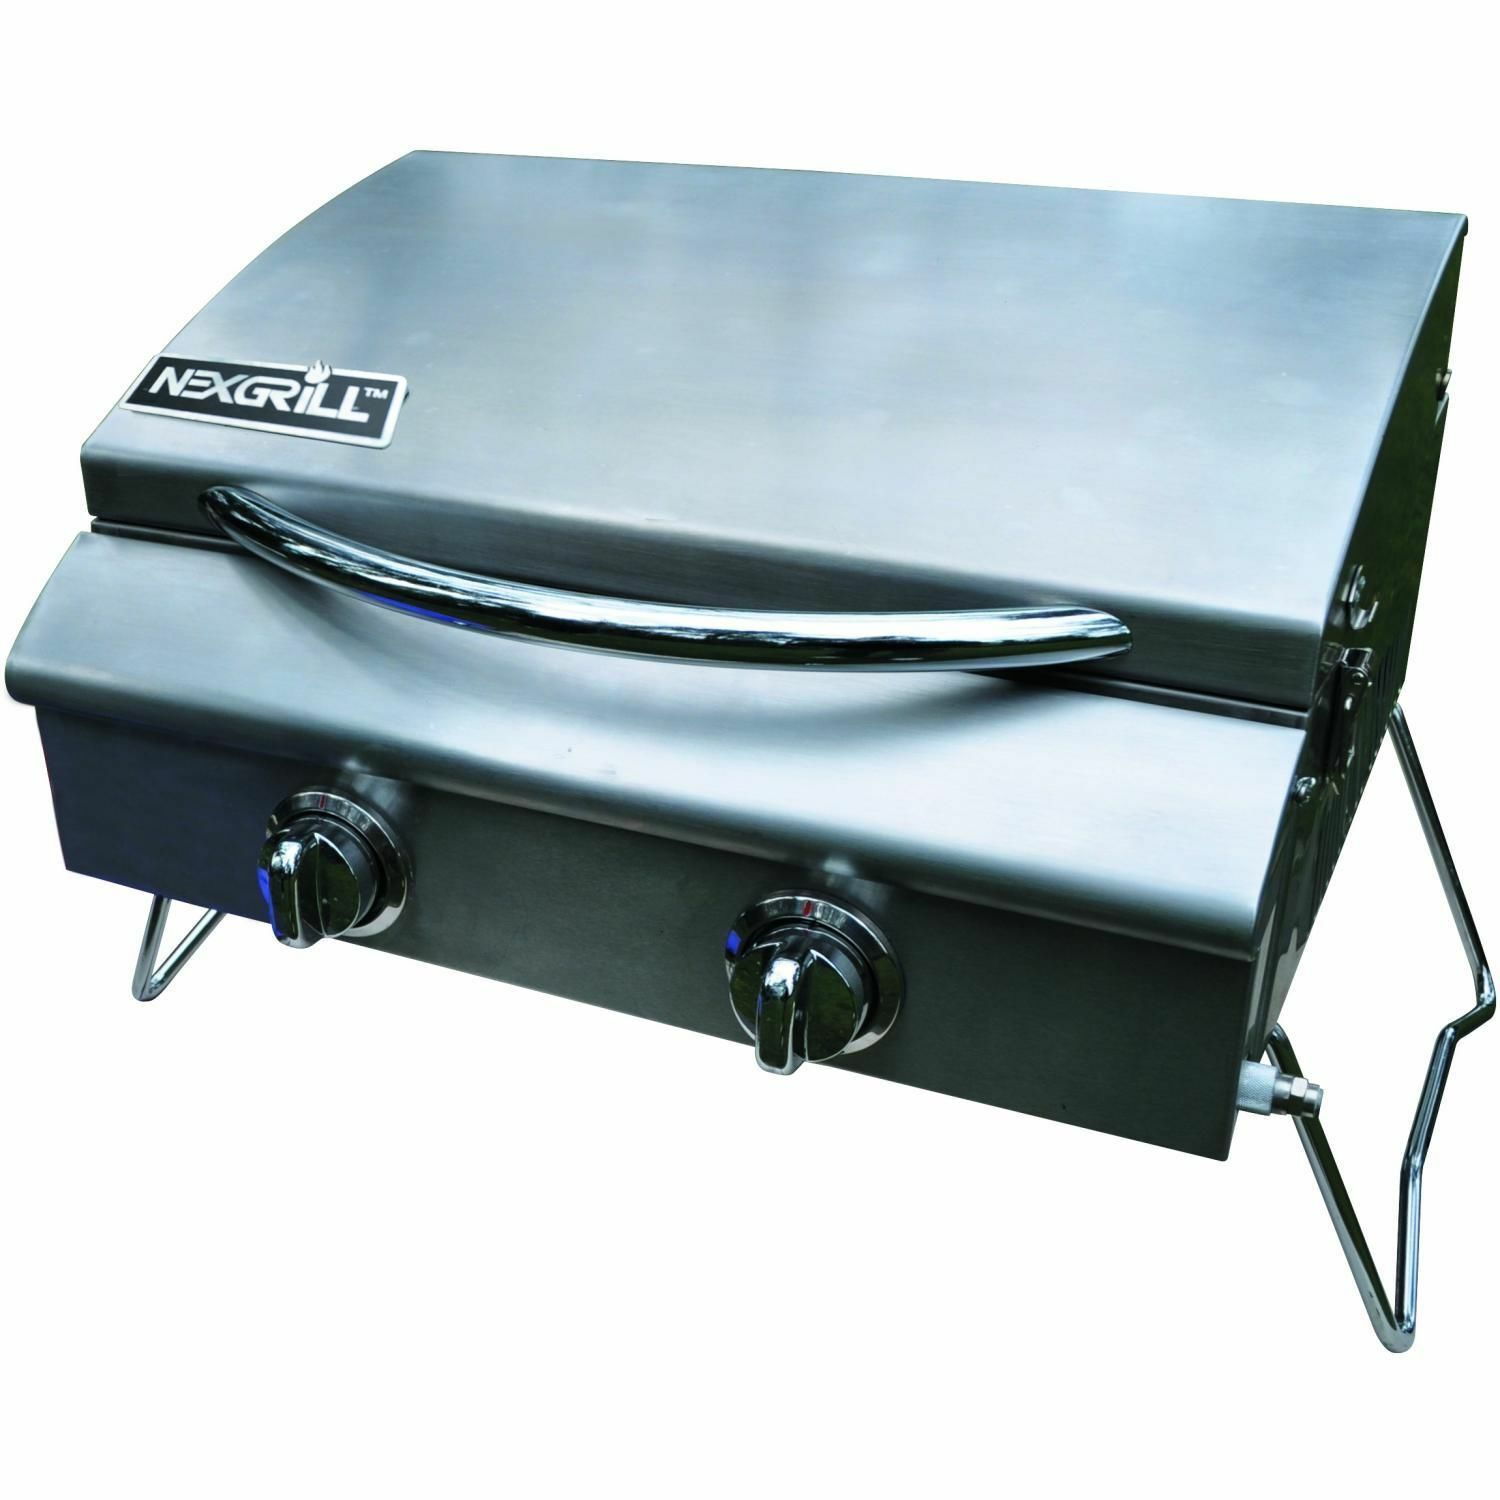 Nexgrill 820 0015 2 Burner